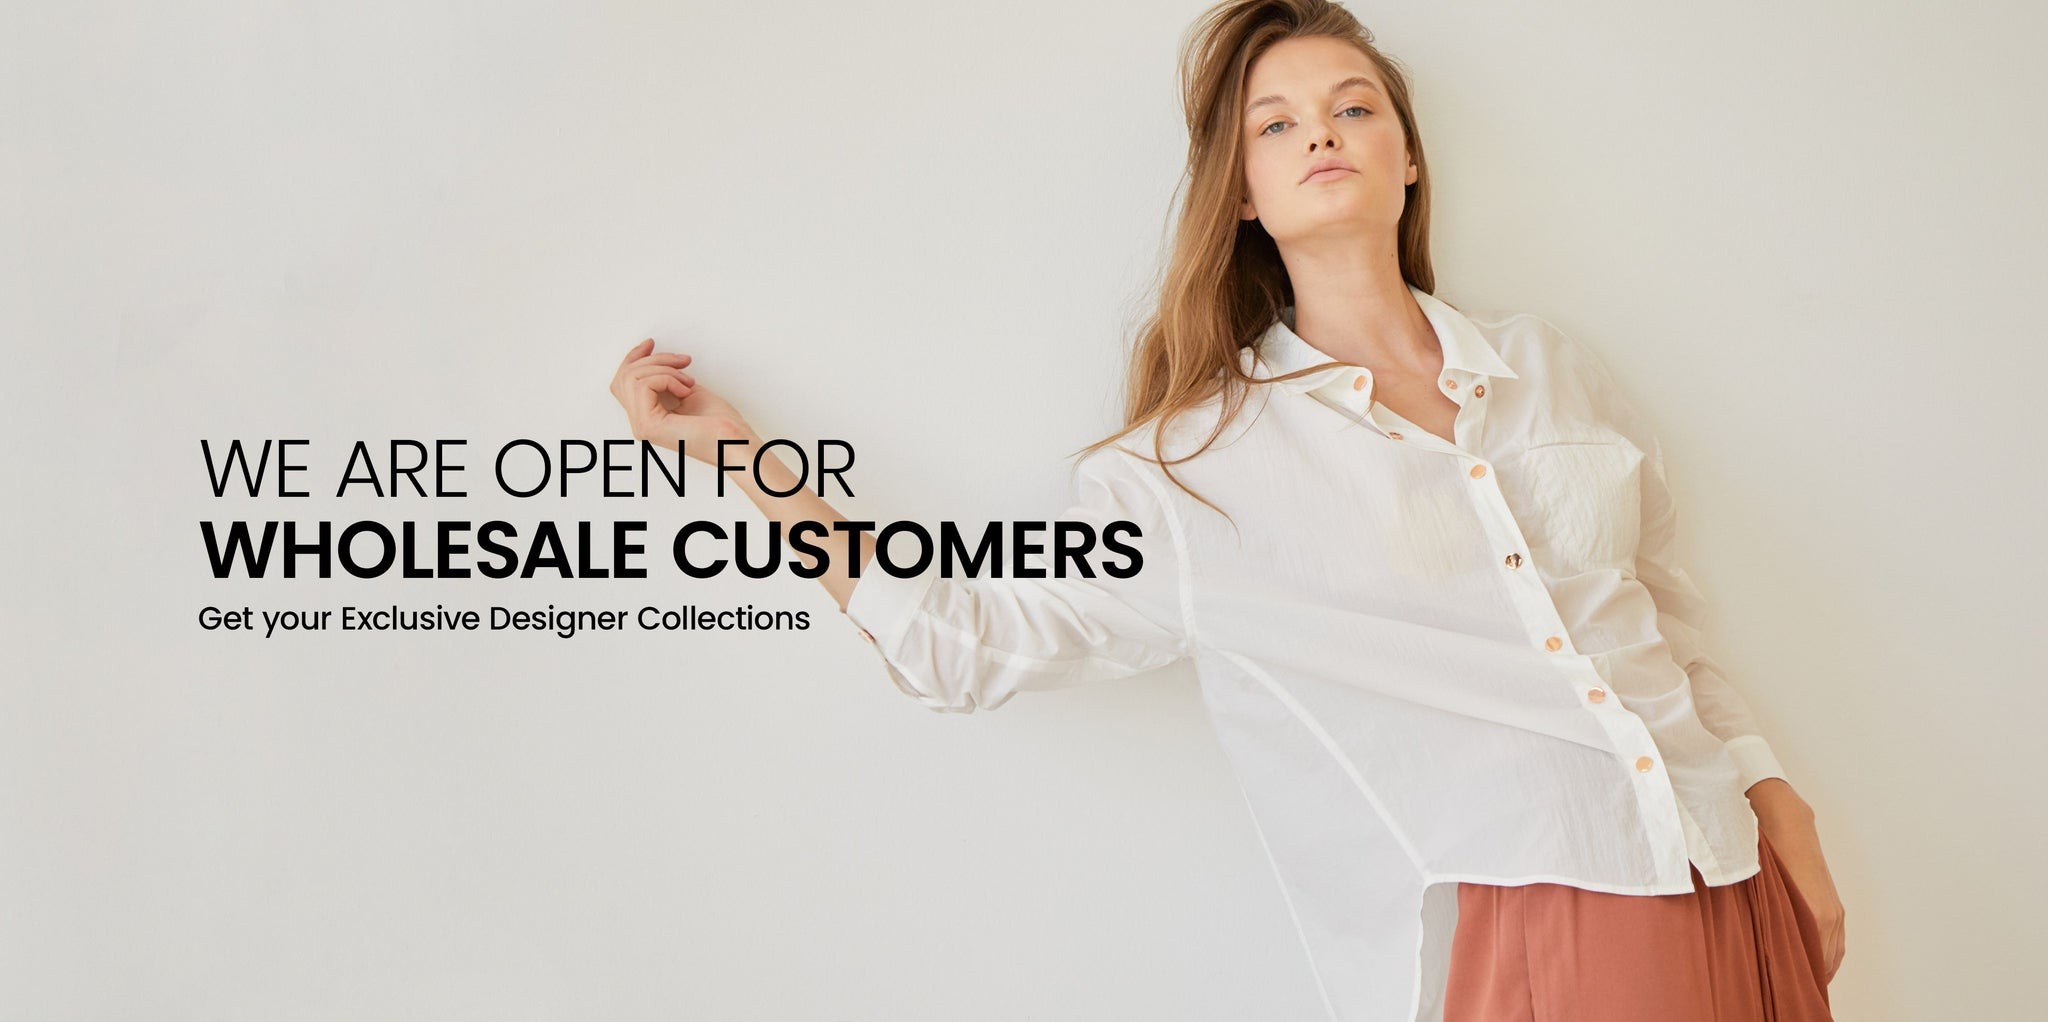 B2B Wholesale order is available for designer collections at New Designers Space